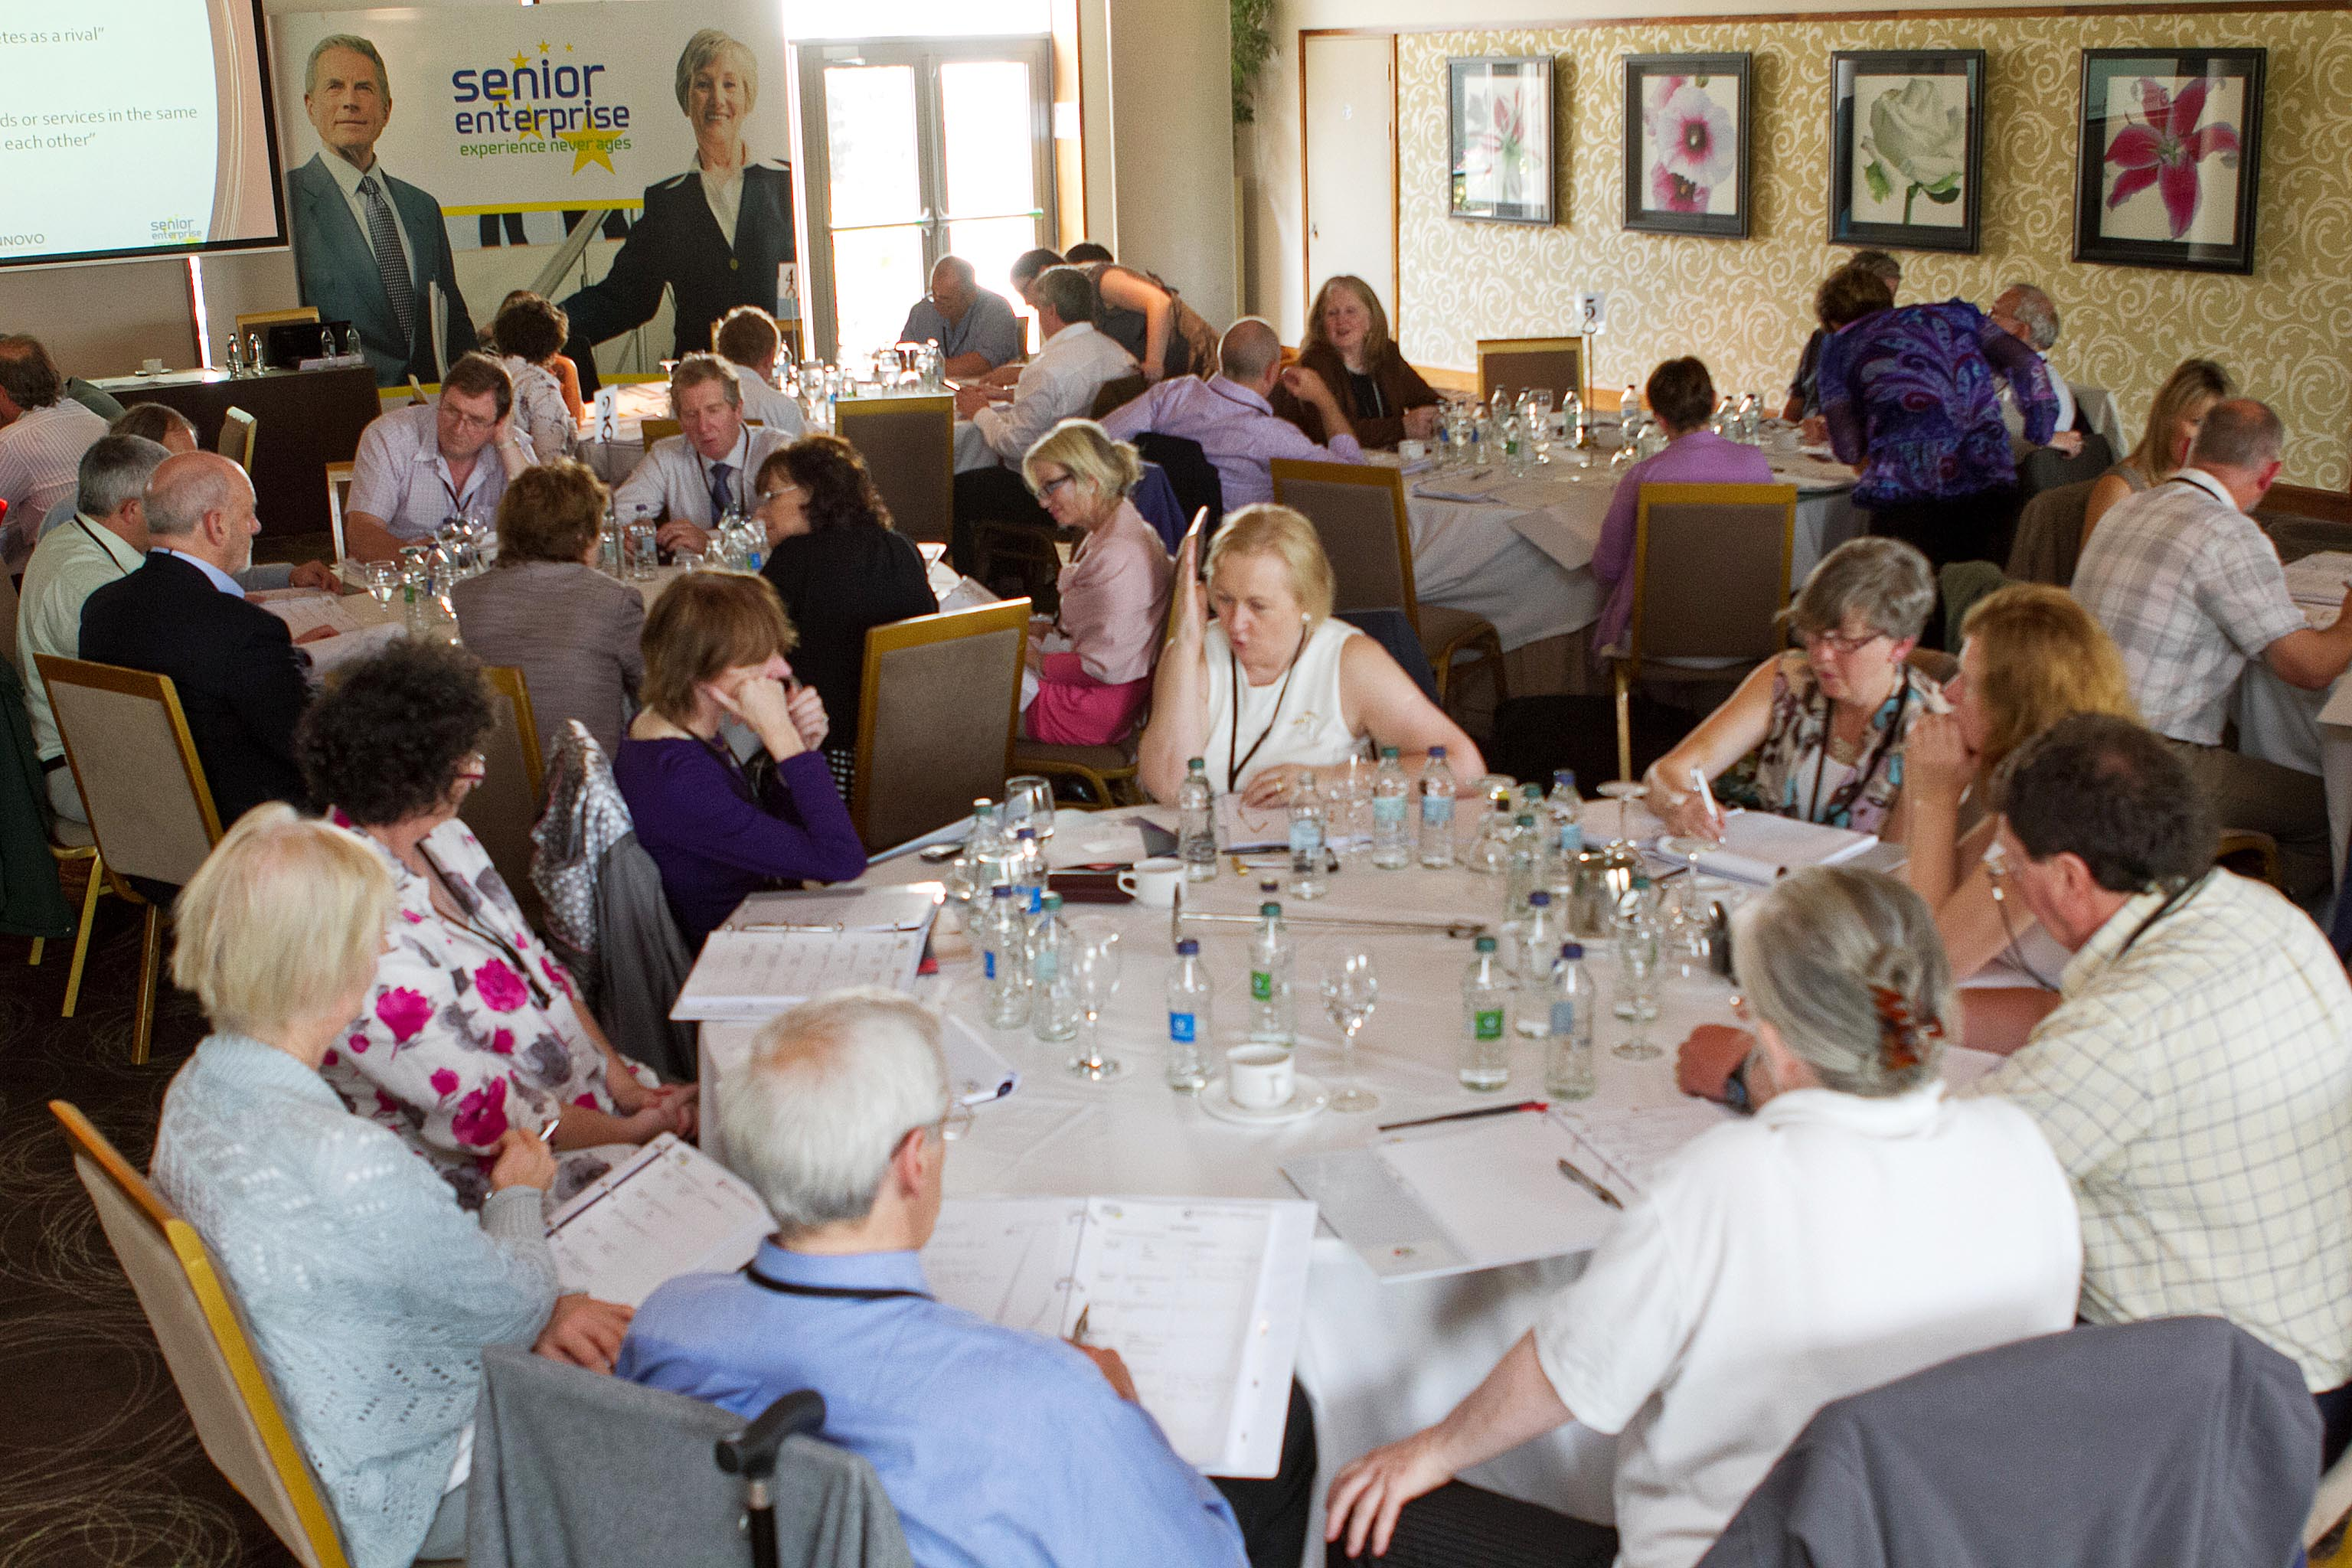 Delegates attending the Senior Enterprise Workshop, Killeshin Hotel, Portlaoise, June 2012